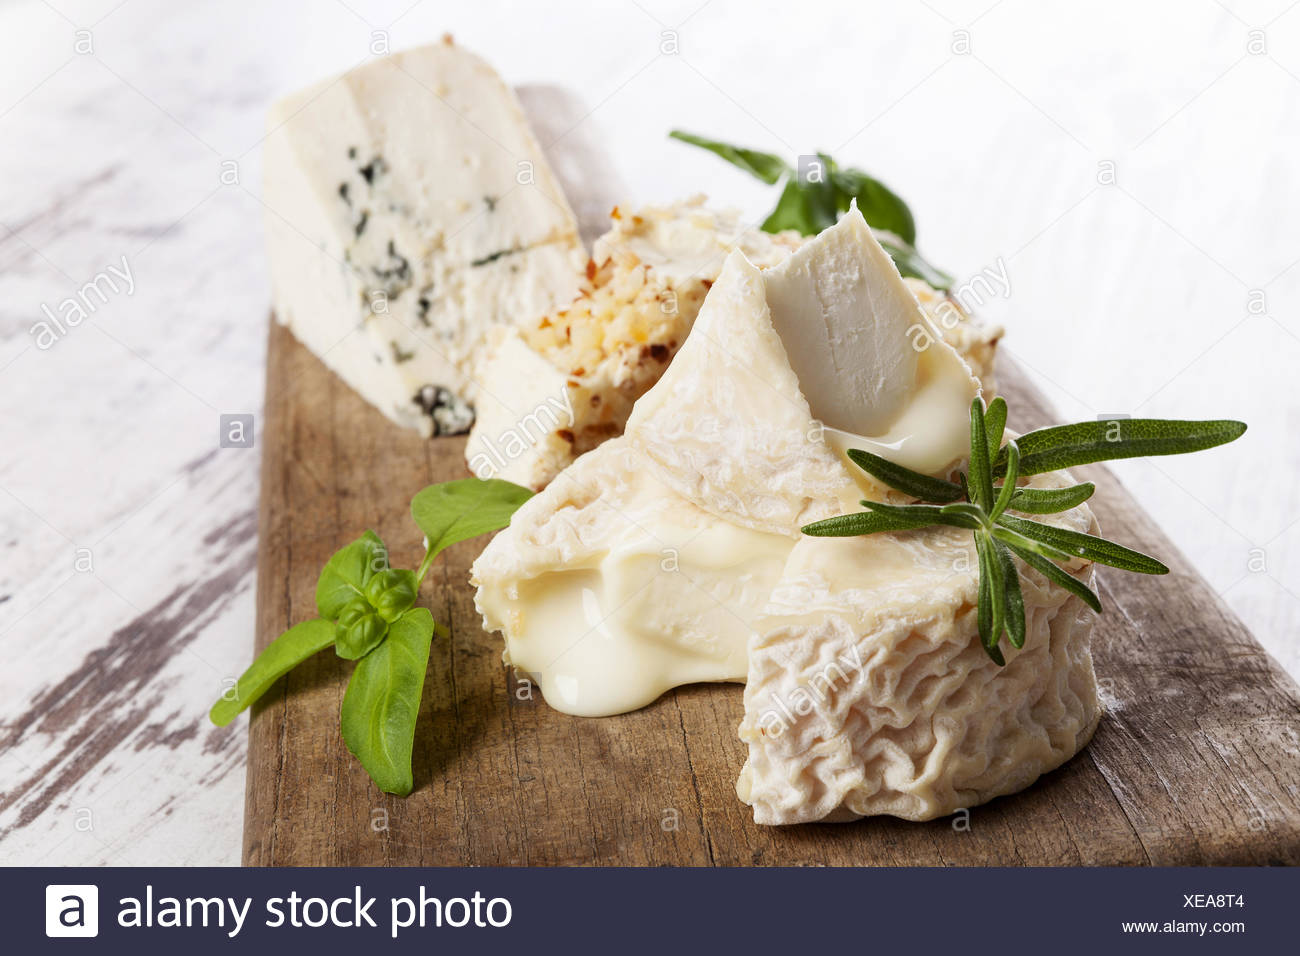 Luxurious cheese variation - Stock Image